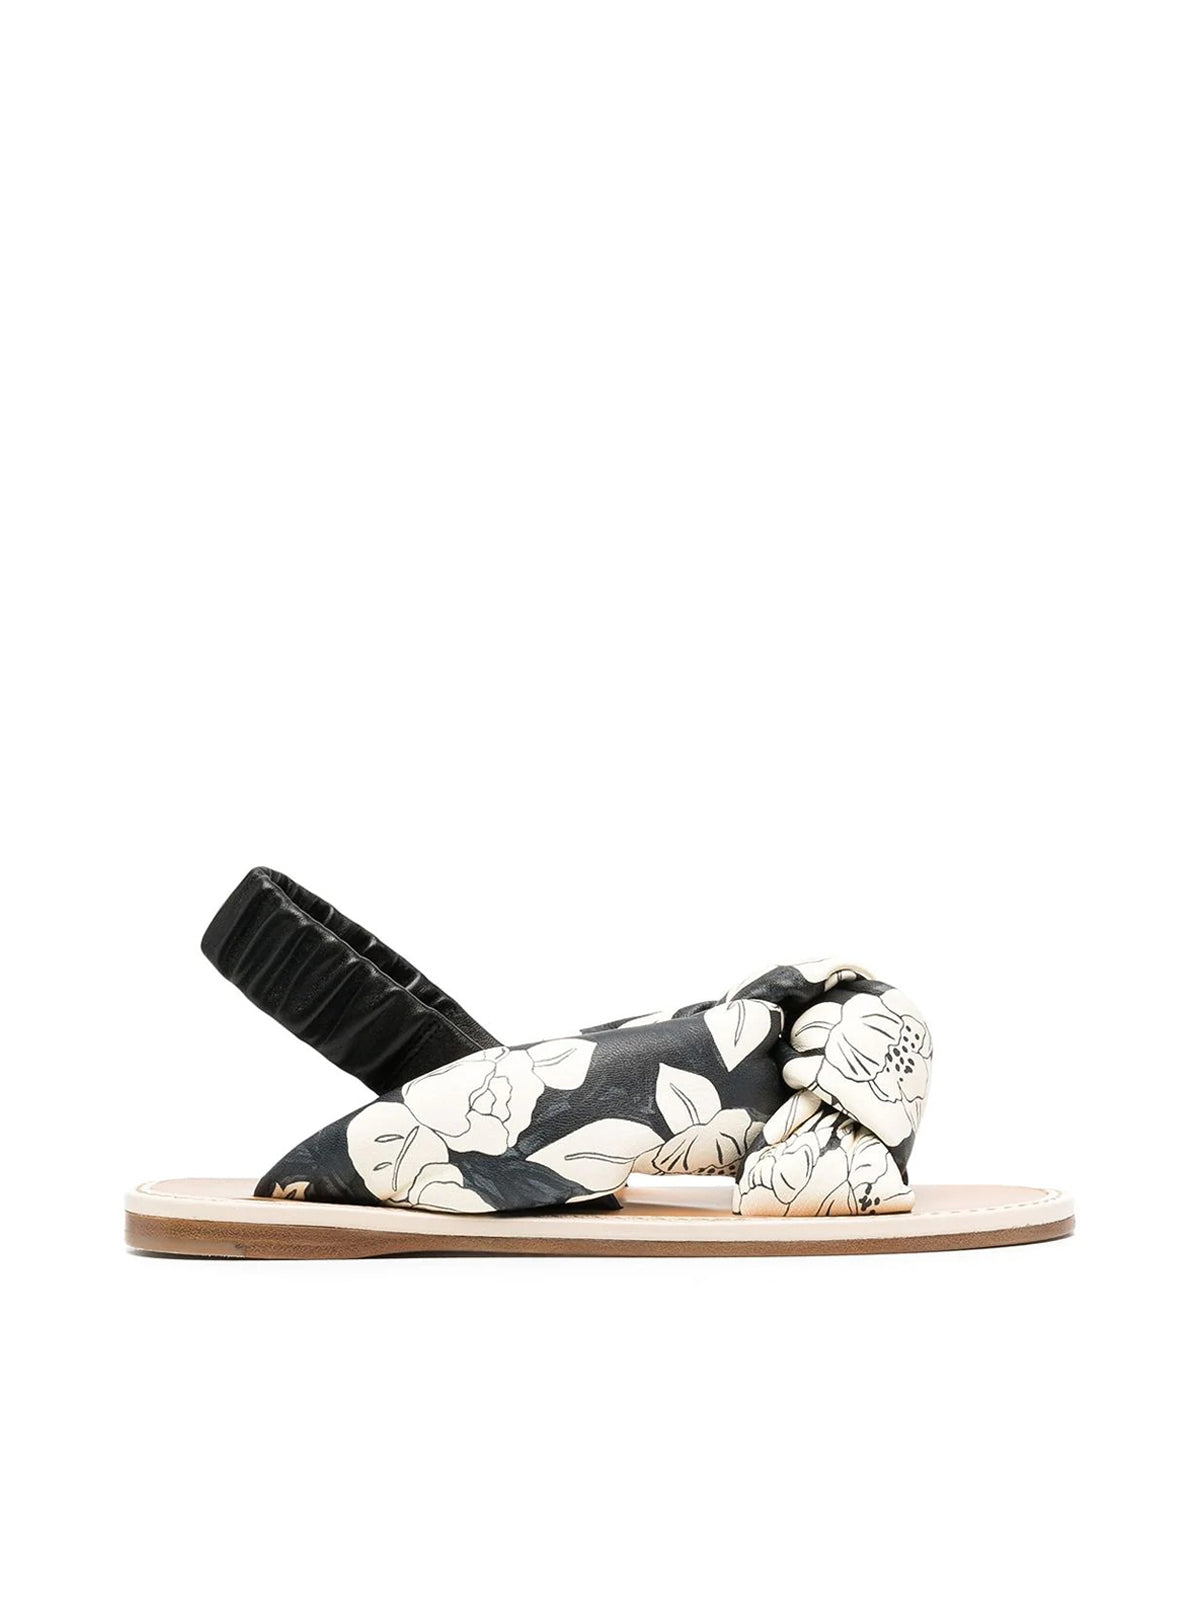 Miu Miu FLORAL PRINT LEATHER SANDALS